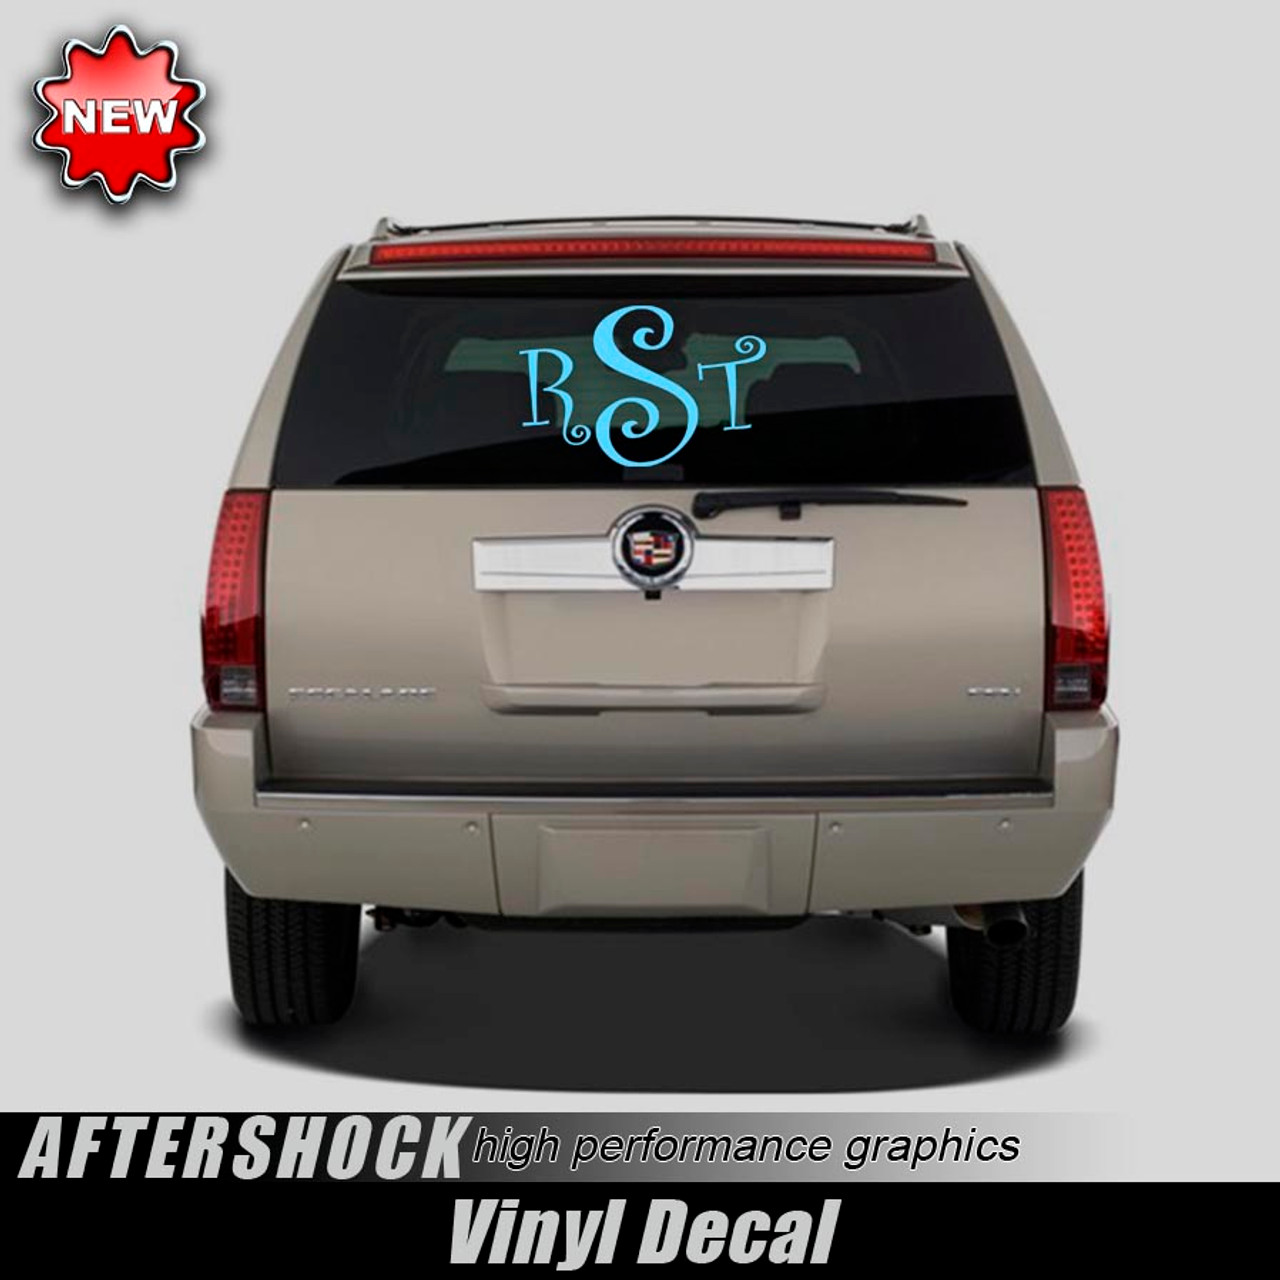 Monogrammed Rear Window Decal X Aftershock Decals - Rear window decals for vehicles